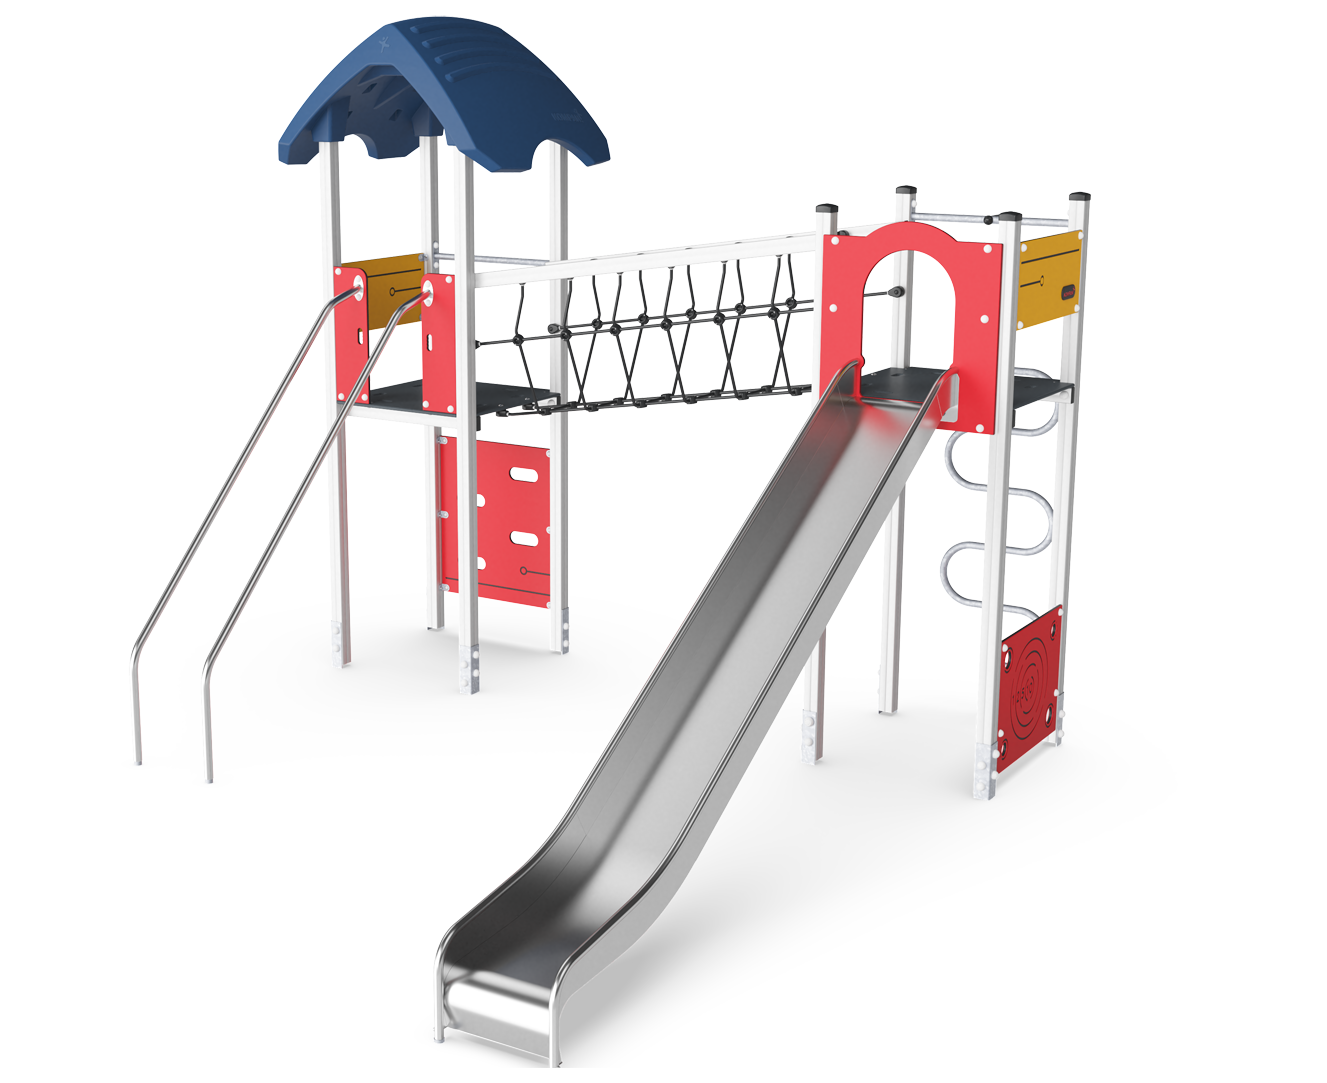 Double Tower with Banister Bars